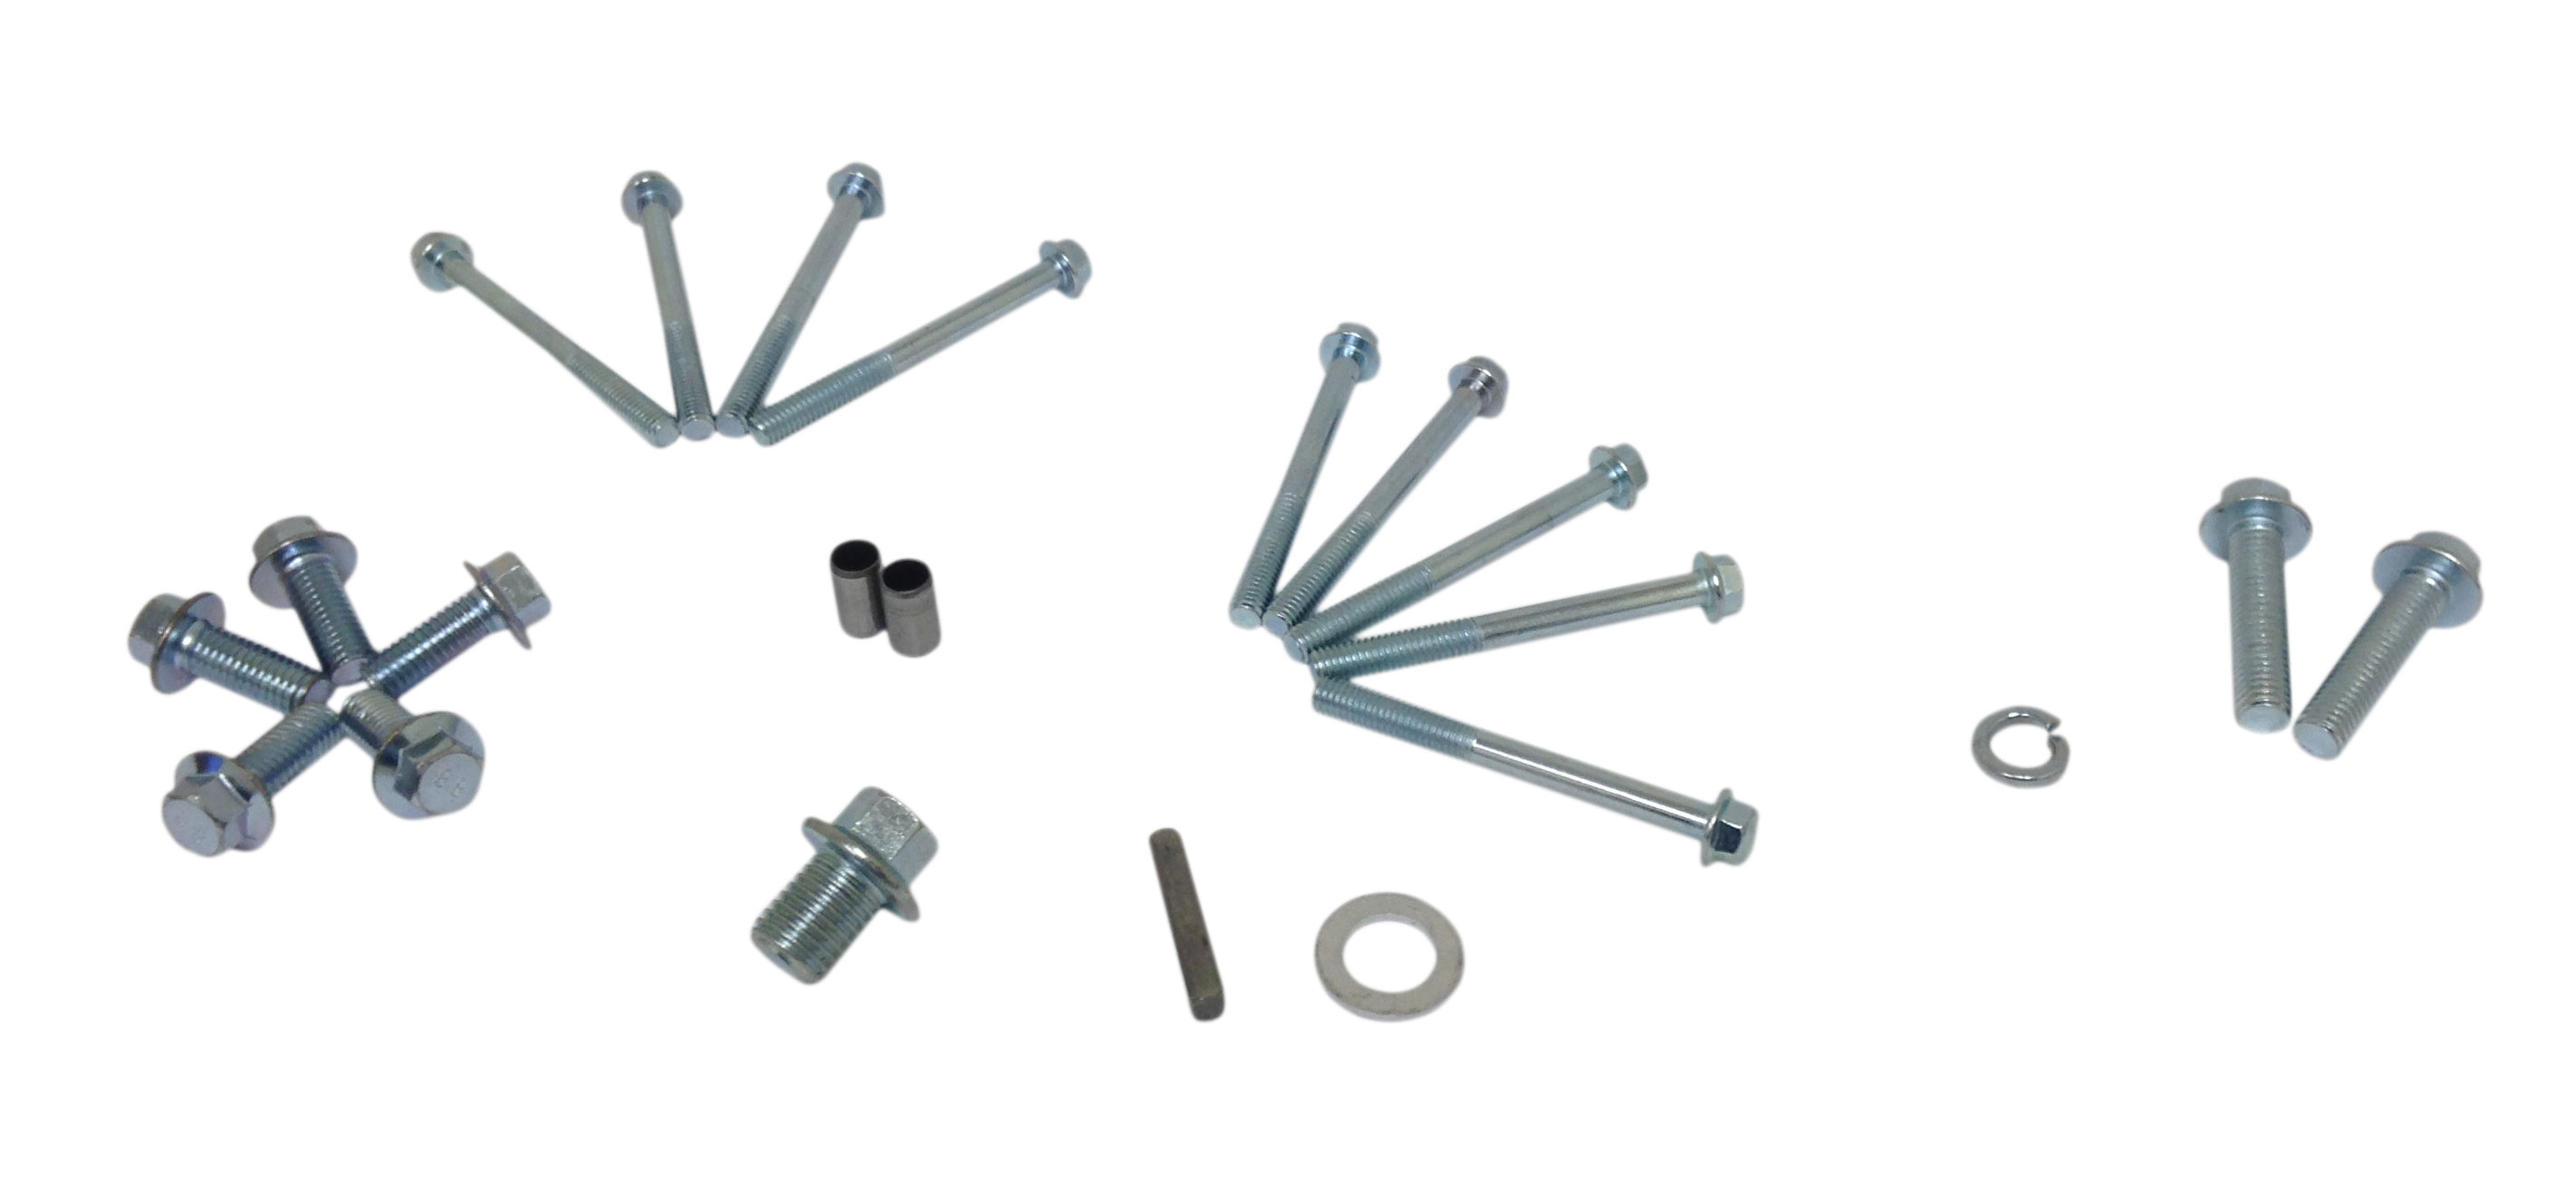 Screw And Key Kit For 2 1 Reduction Gearbox For Honda 6